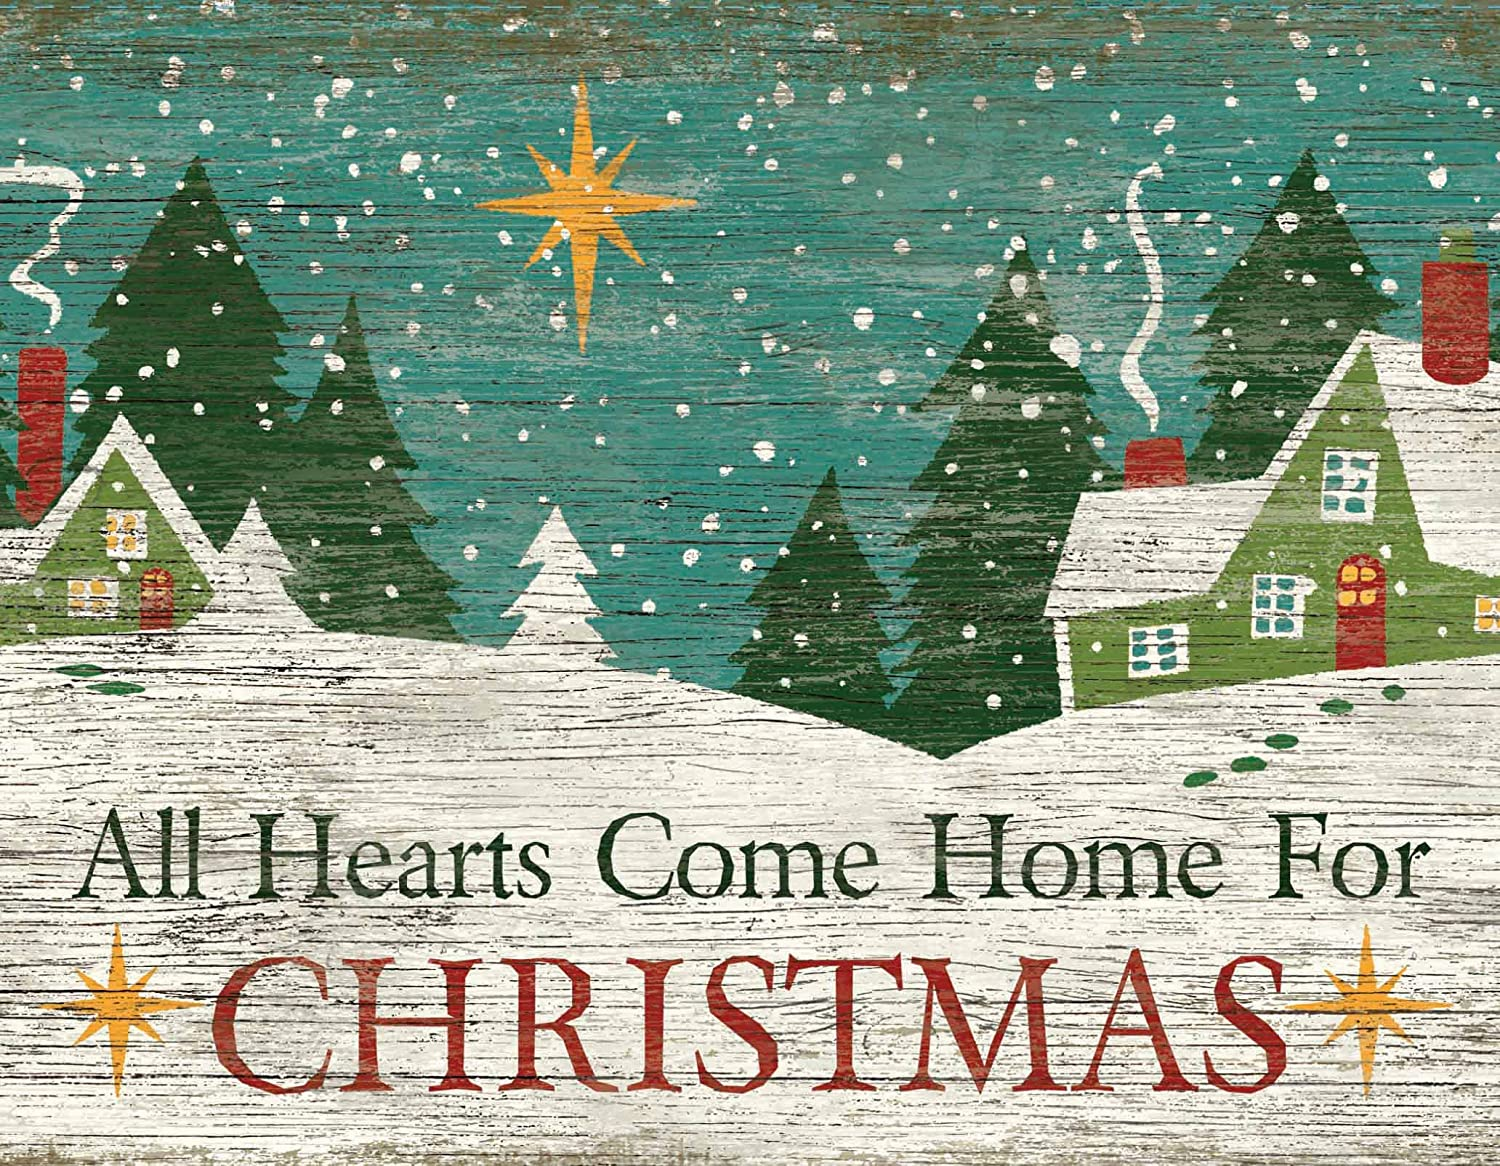 Perfect Timing Lang Christmas Heart Boxed Christmas Card by Suzanne Nicoll, 5.375 X 6.875, 18 Cards and 19 Envelopes (1004763)